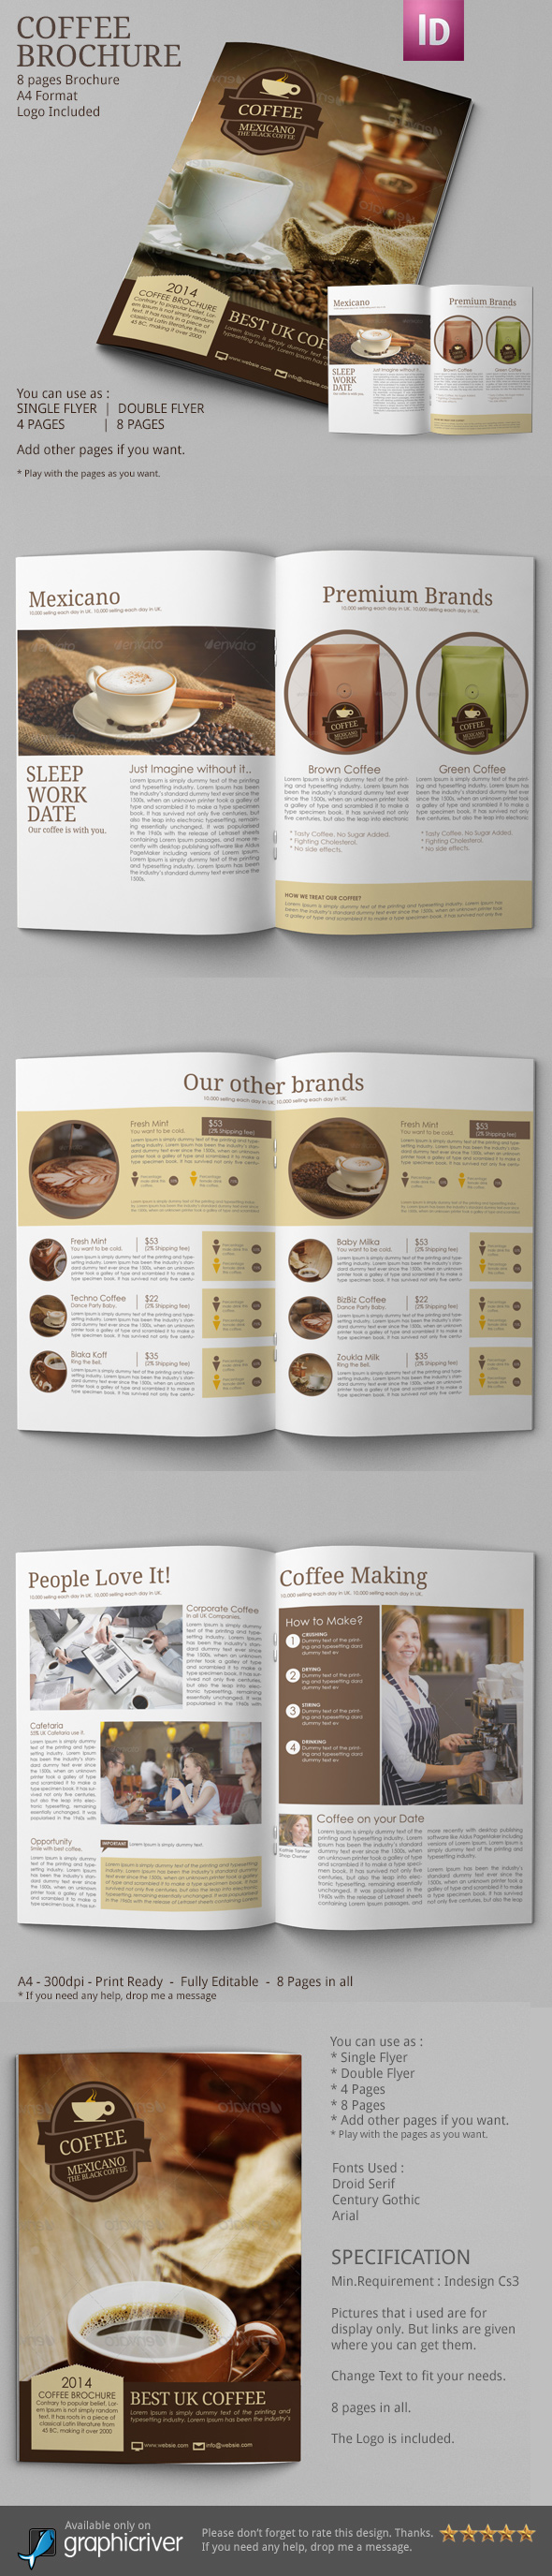 Coffee Coffee Brochure  coffee brochure template coffee brochure design coffee cup coffee branding coffee shops Coffee Business Coffee Advertising sell coffee online Coffee Store coffee publication